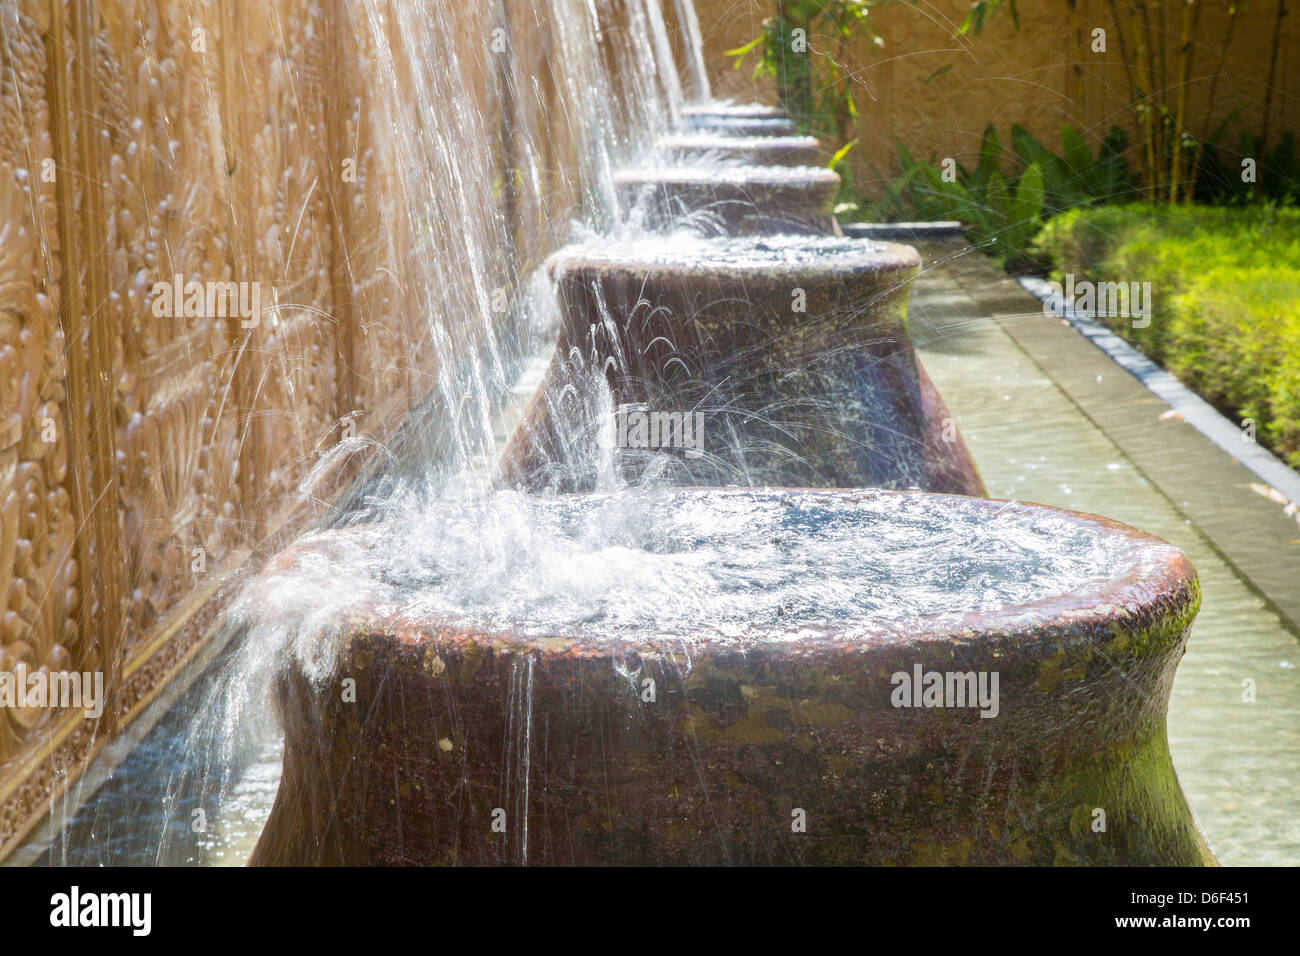 Water Splashing Into Big Pots By The Entrance To A Smart Hotel In Sabah  Borneo